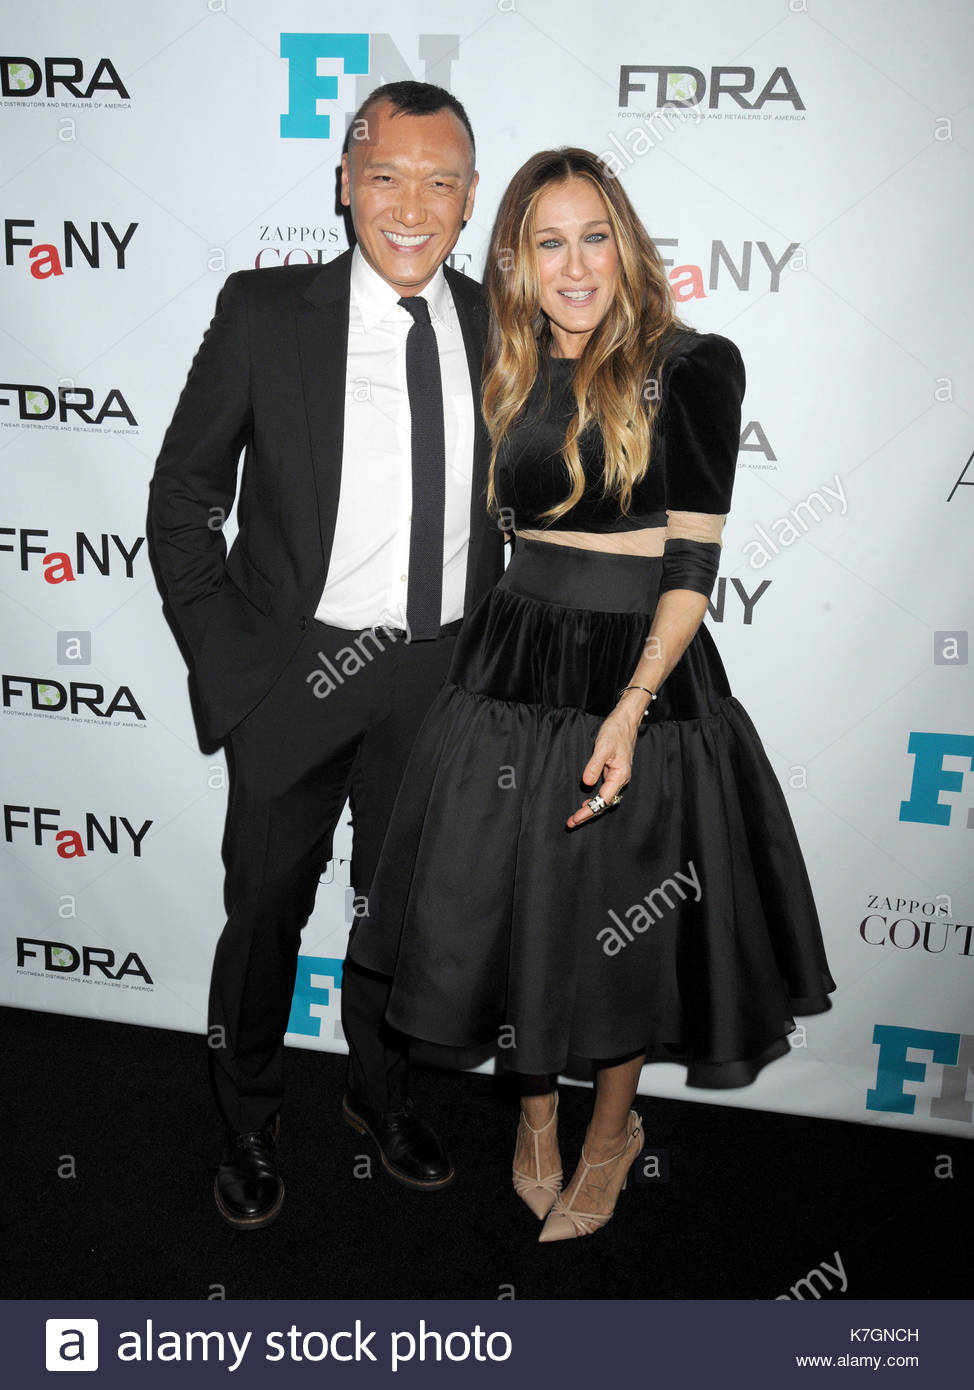 Joe zee and sarah jessica parker celebrity meet and greet at the celebrity meet and greet at the 28th annual footwear news achievement awards and hall of fame gala held at the iac headquarters building in nyc m4hsunfo